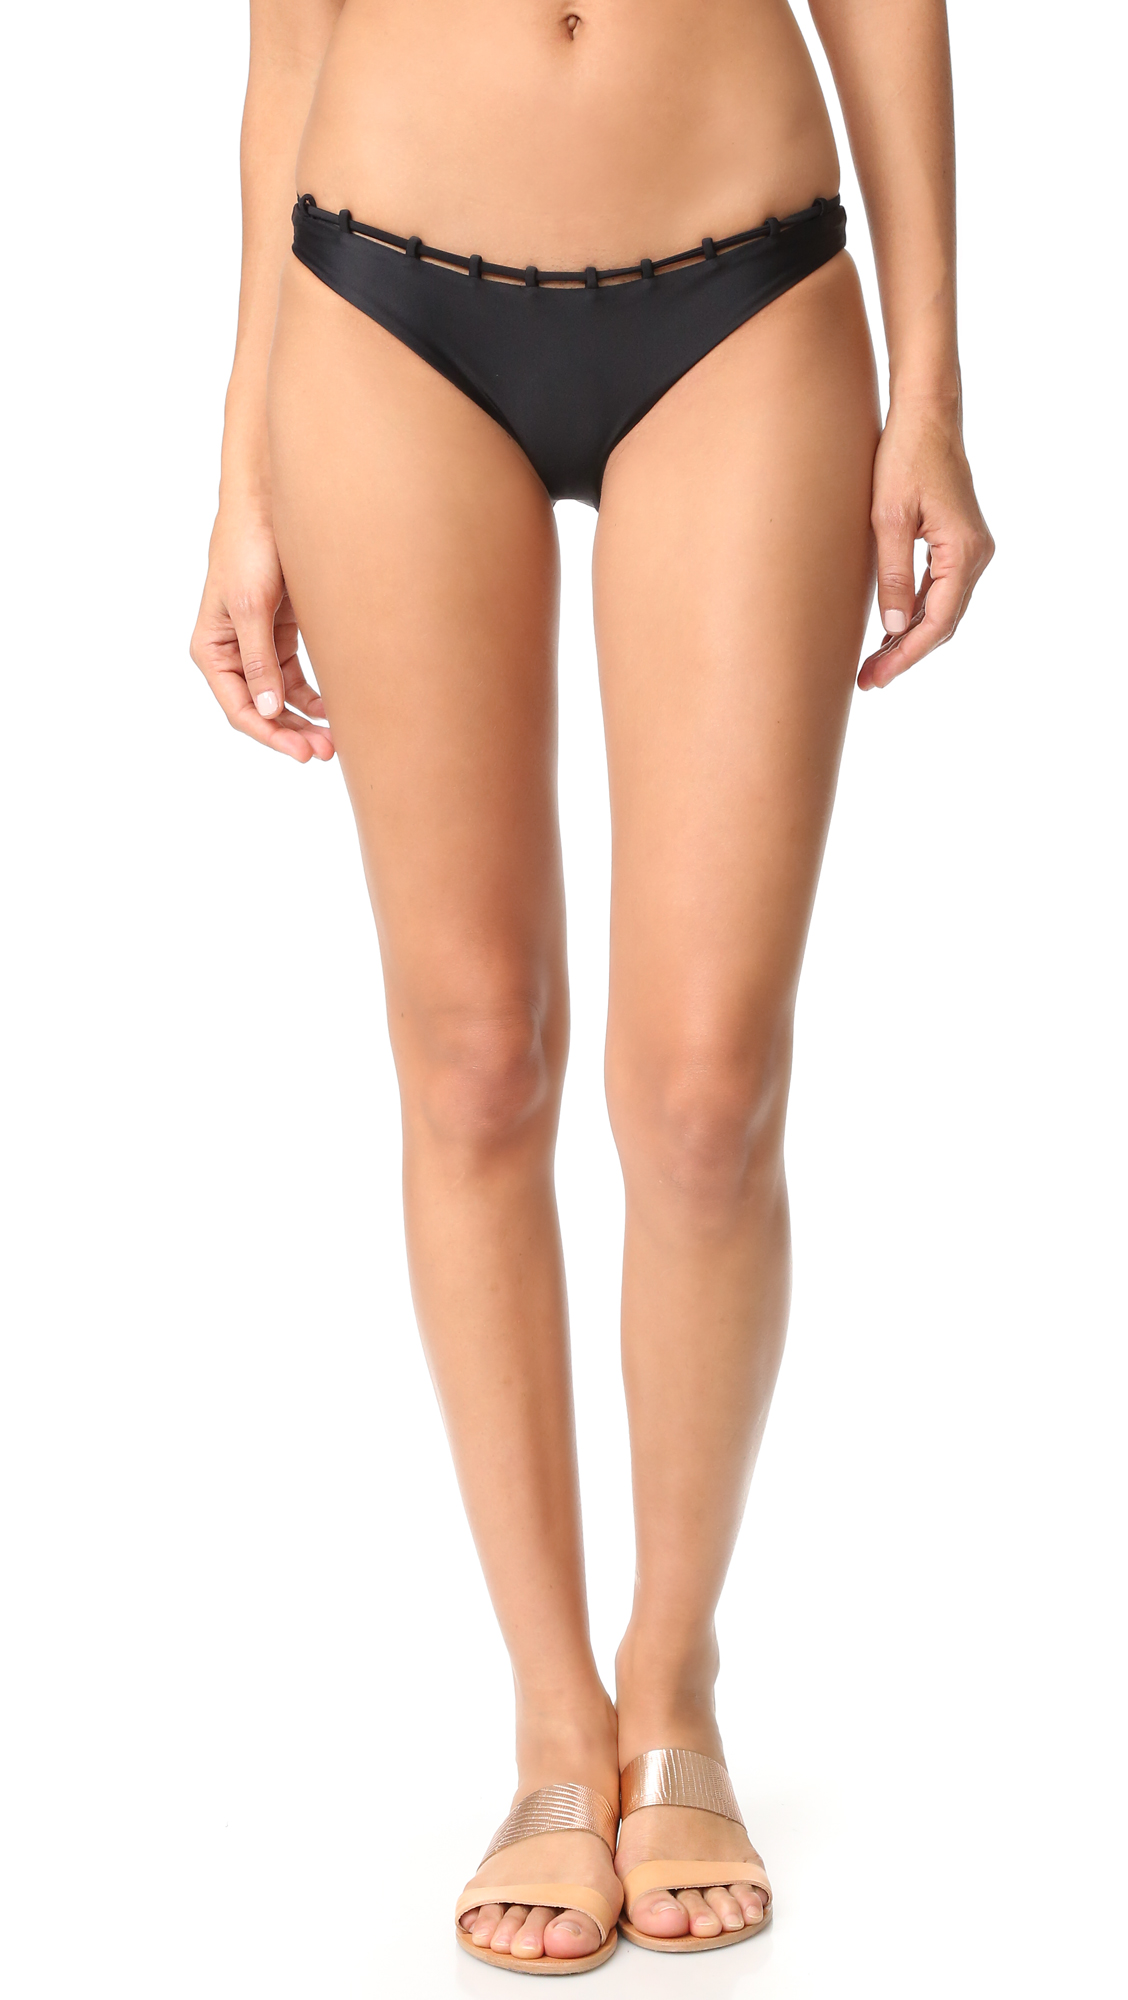 Jade Swim Chain Reaction Bottoms - Black at Shopbop